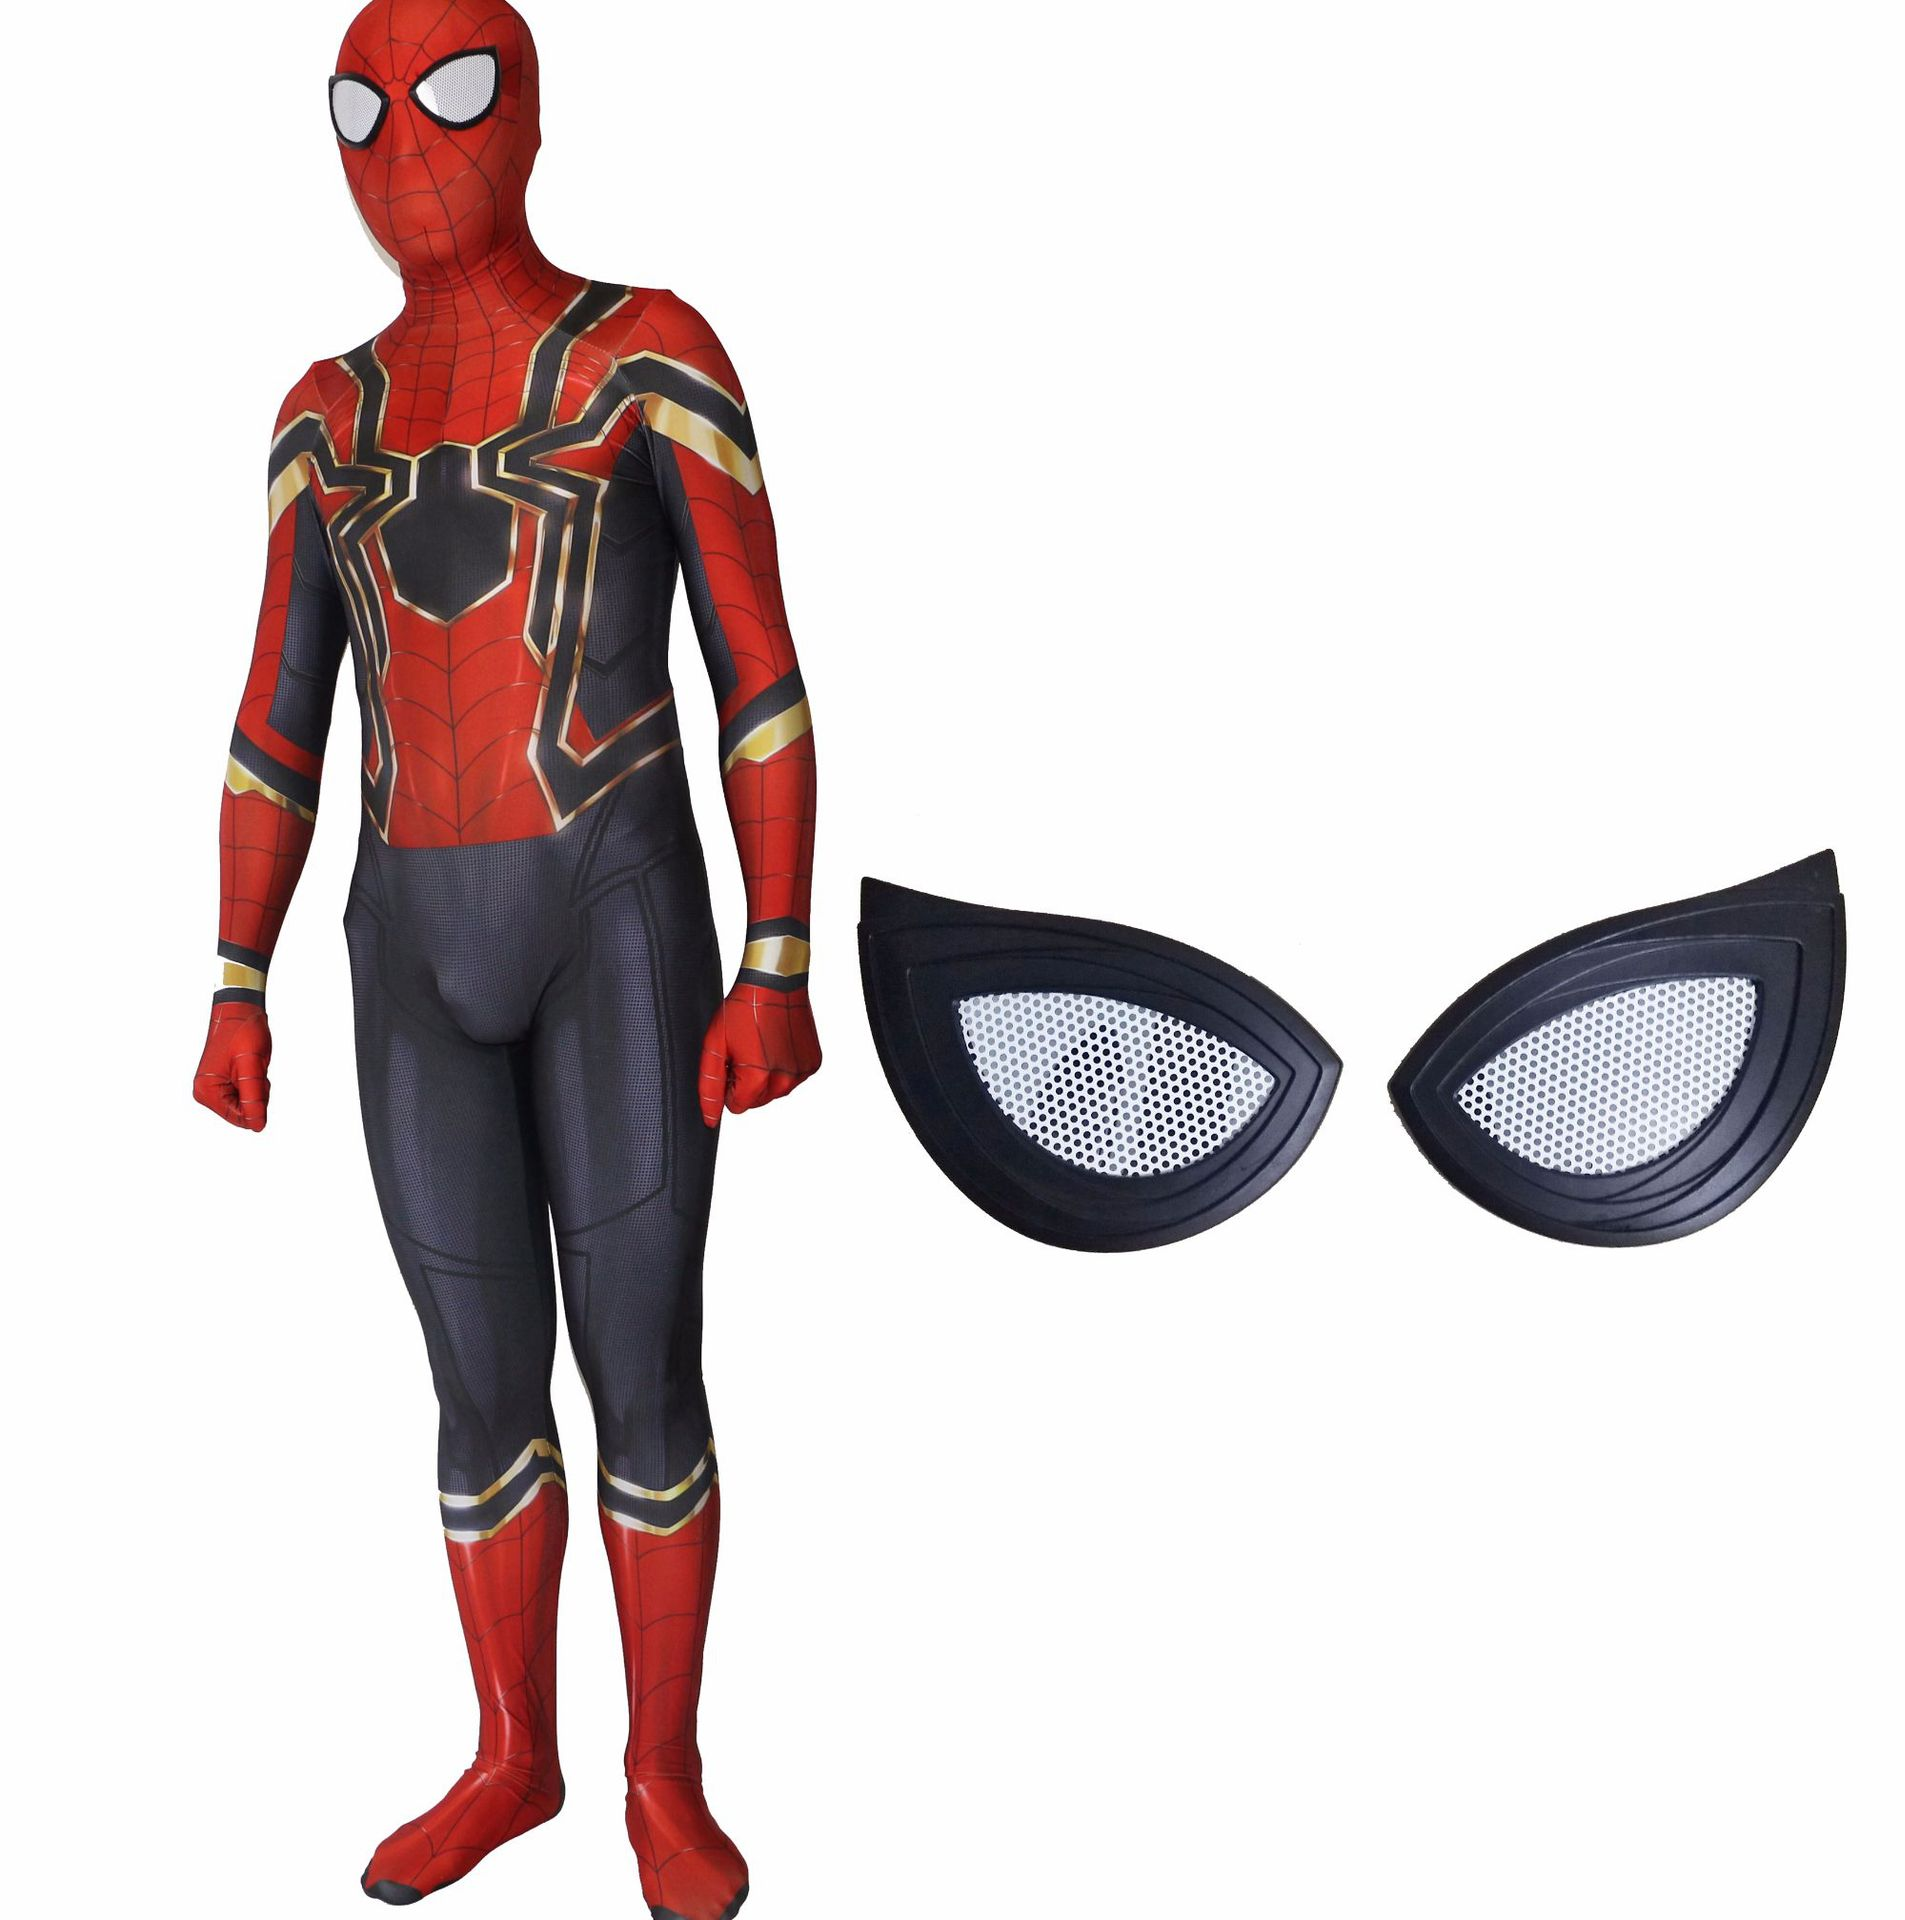 Deluxe Spiderman Costume Adult Men Homecoming Cosplay Amazing Superhero Fantasy Movie Fancy Dress